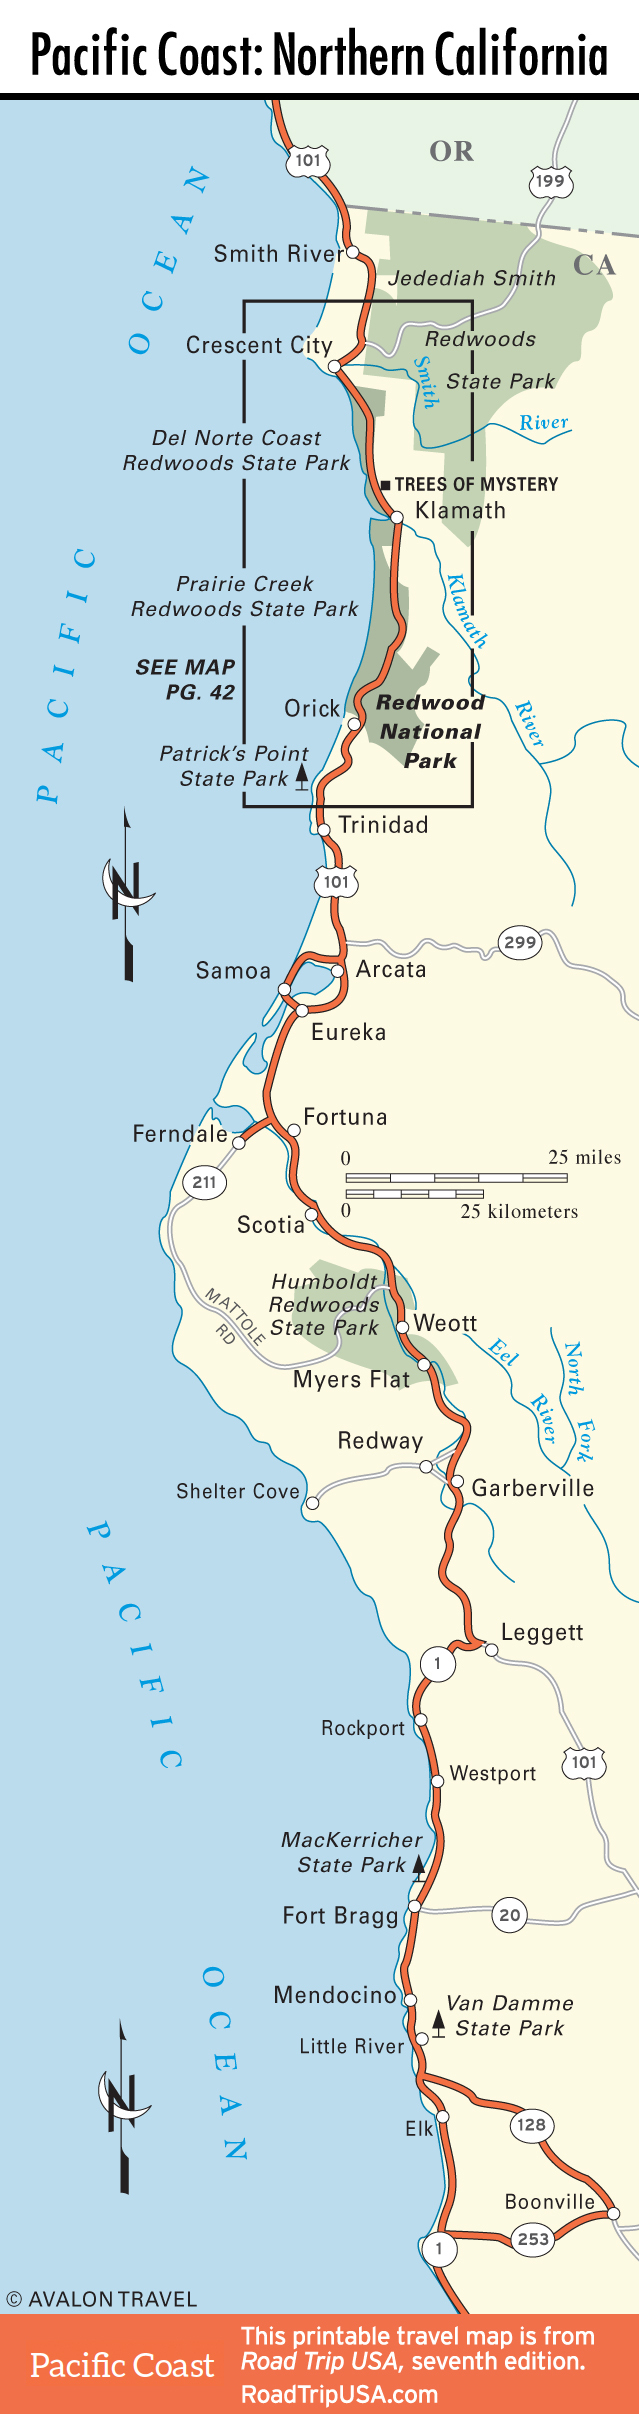 Map Of Central And Northern California - Klipy - Map Of Central And Northern California Coast